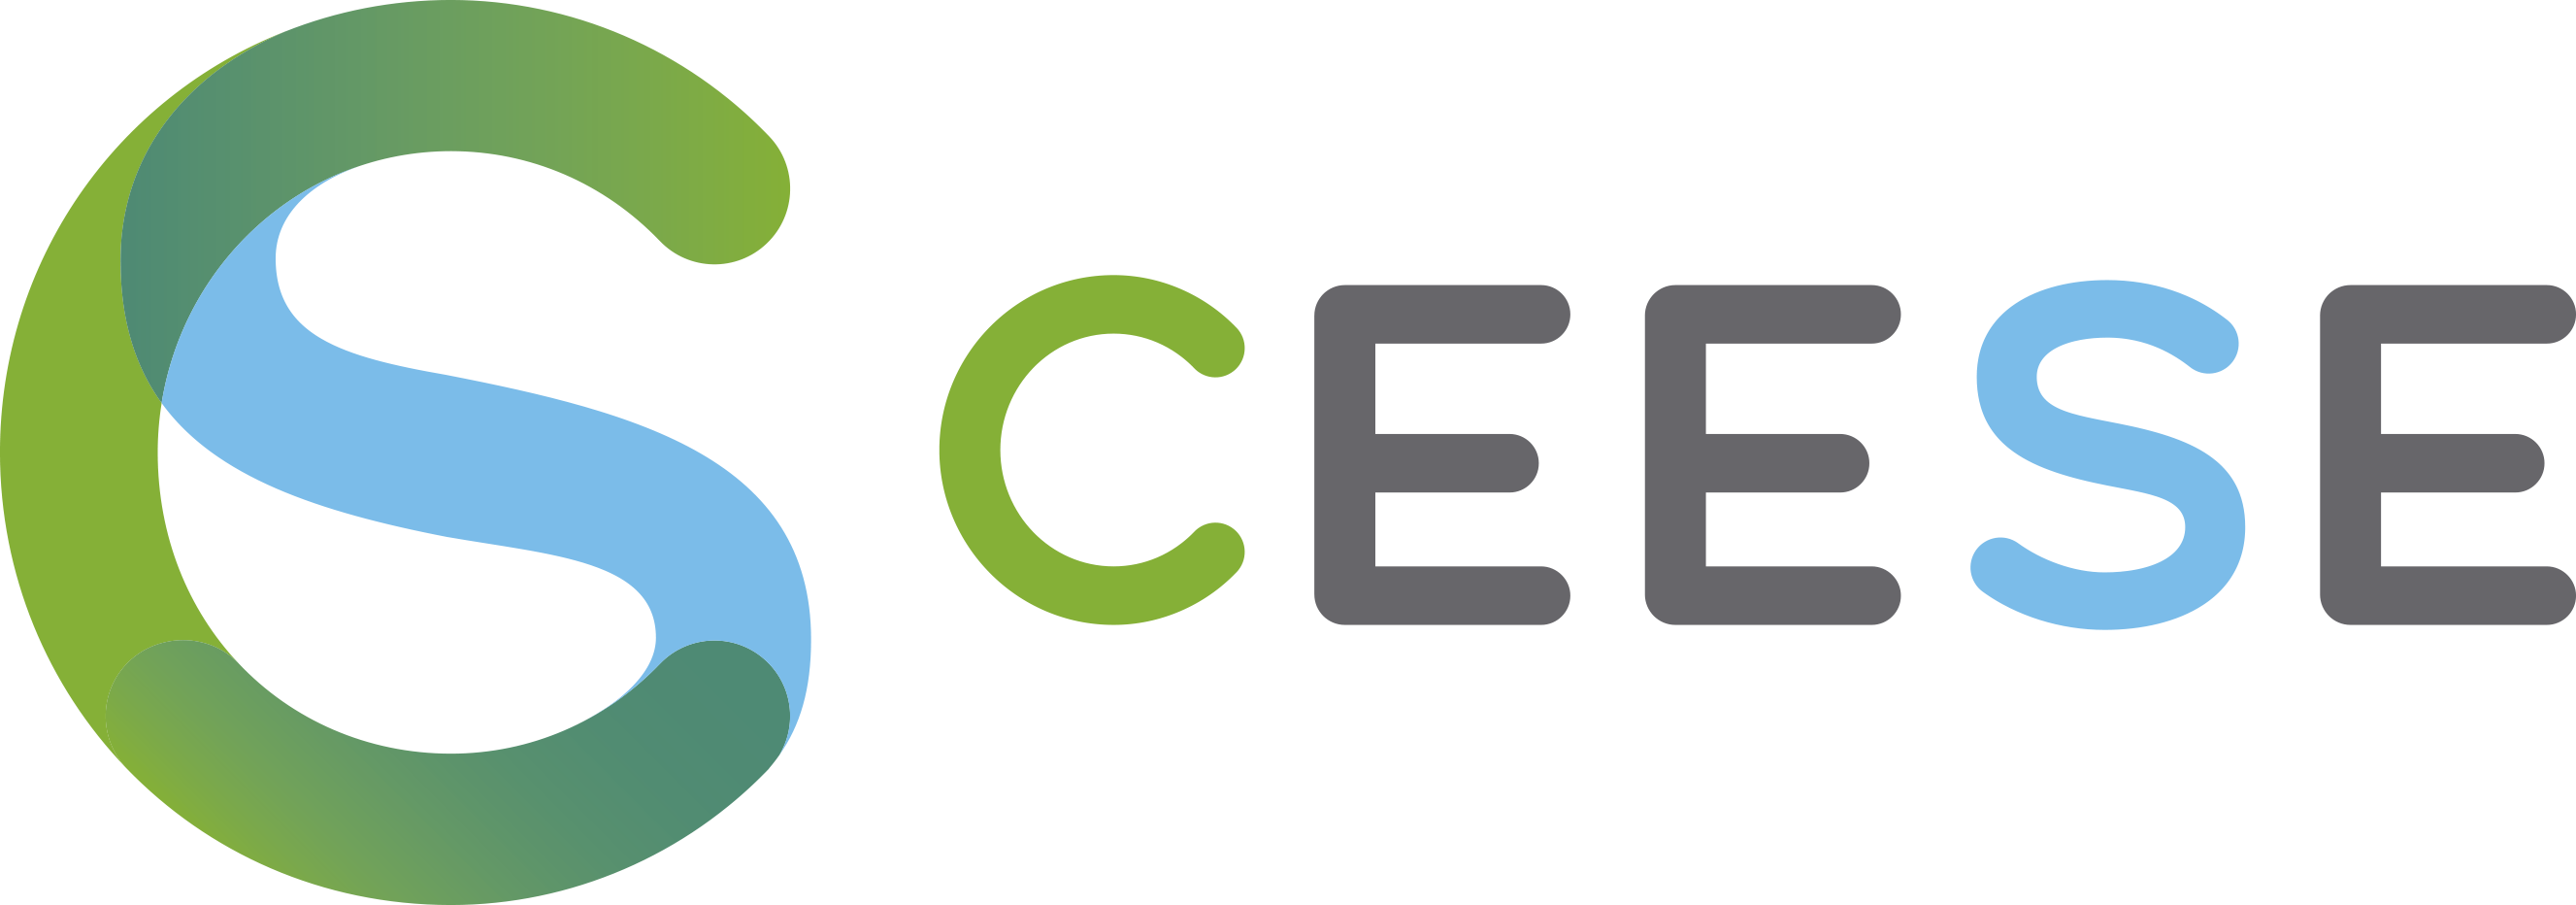 CEESE 2